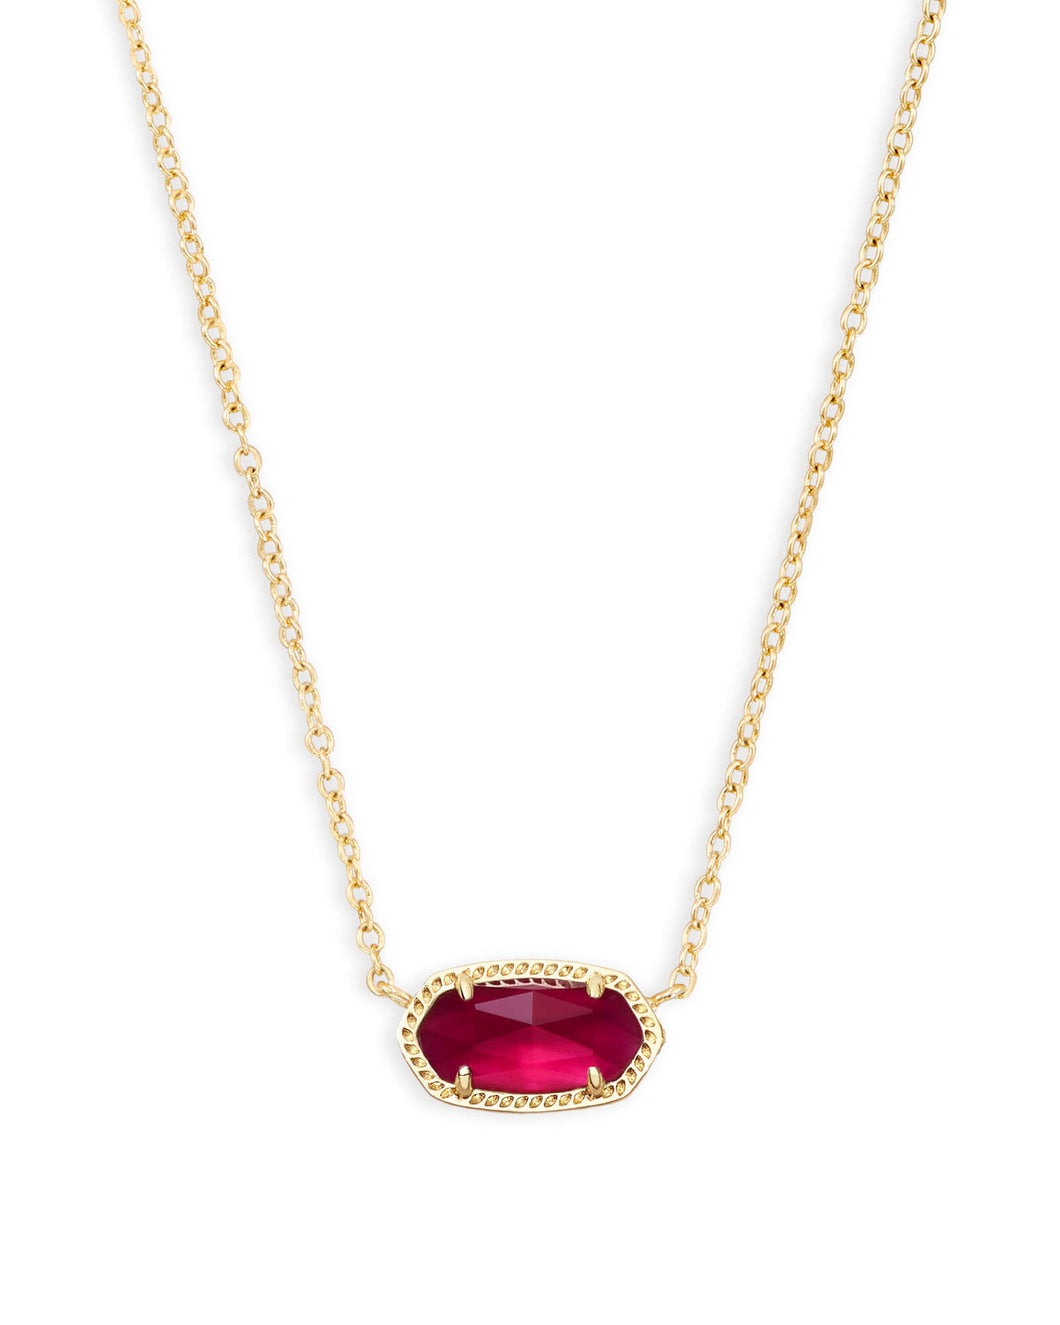 Kendra Scott Elisa Gold Pendant in Berry Illusion